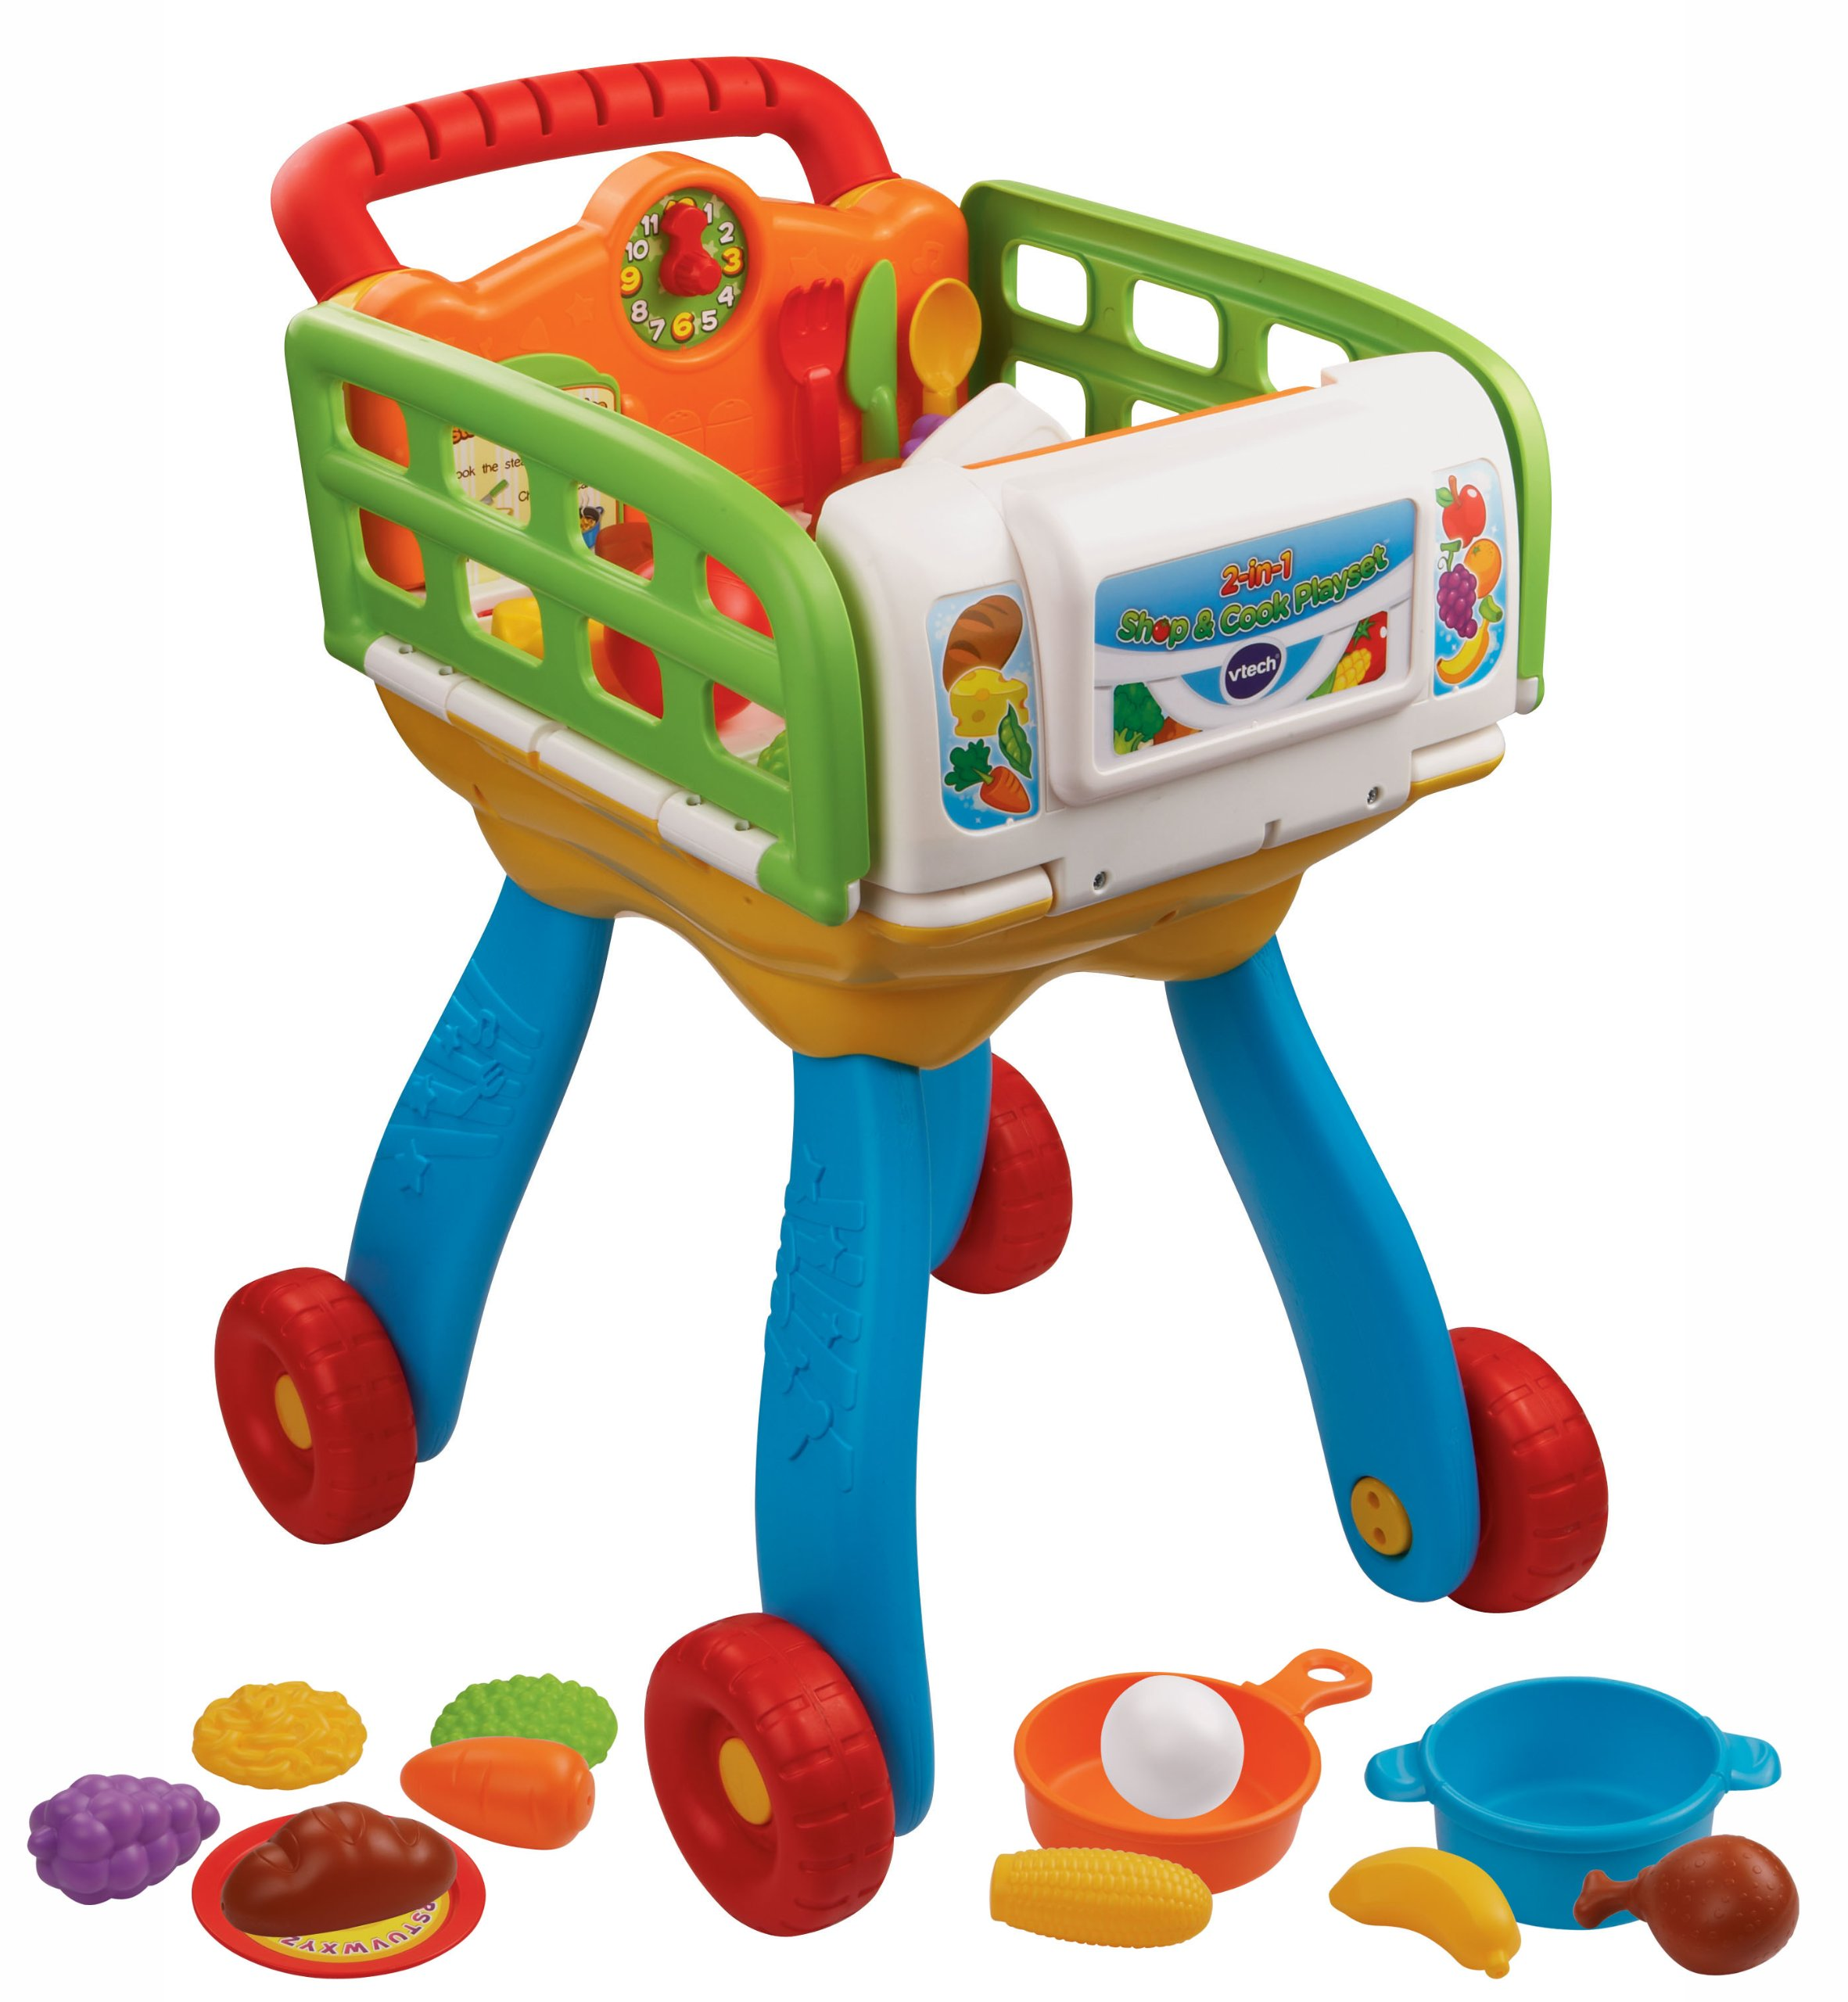 VTech 2-in-1 Shop and Cook Playset by VTech